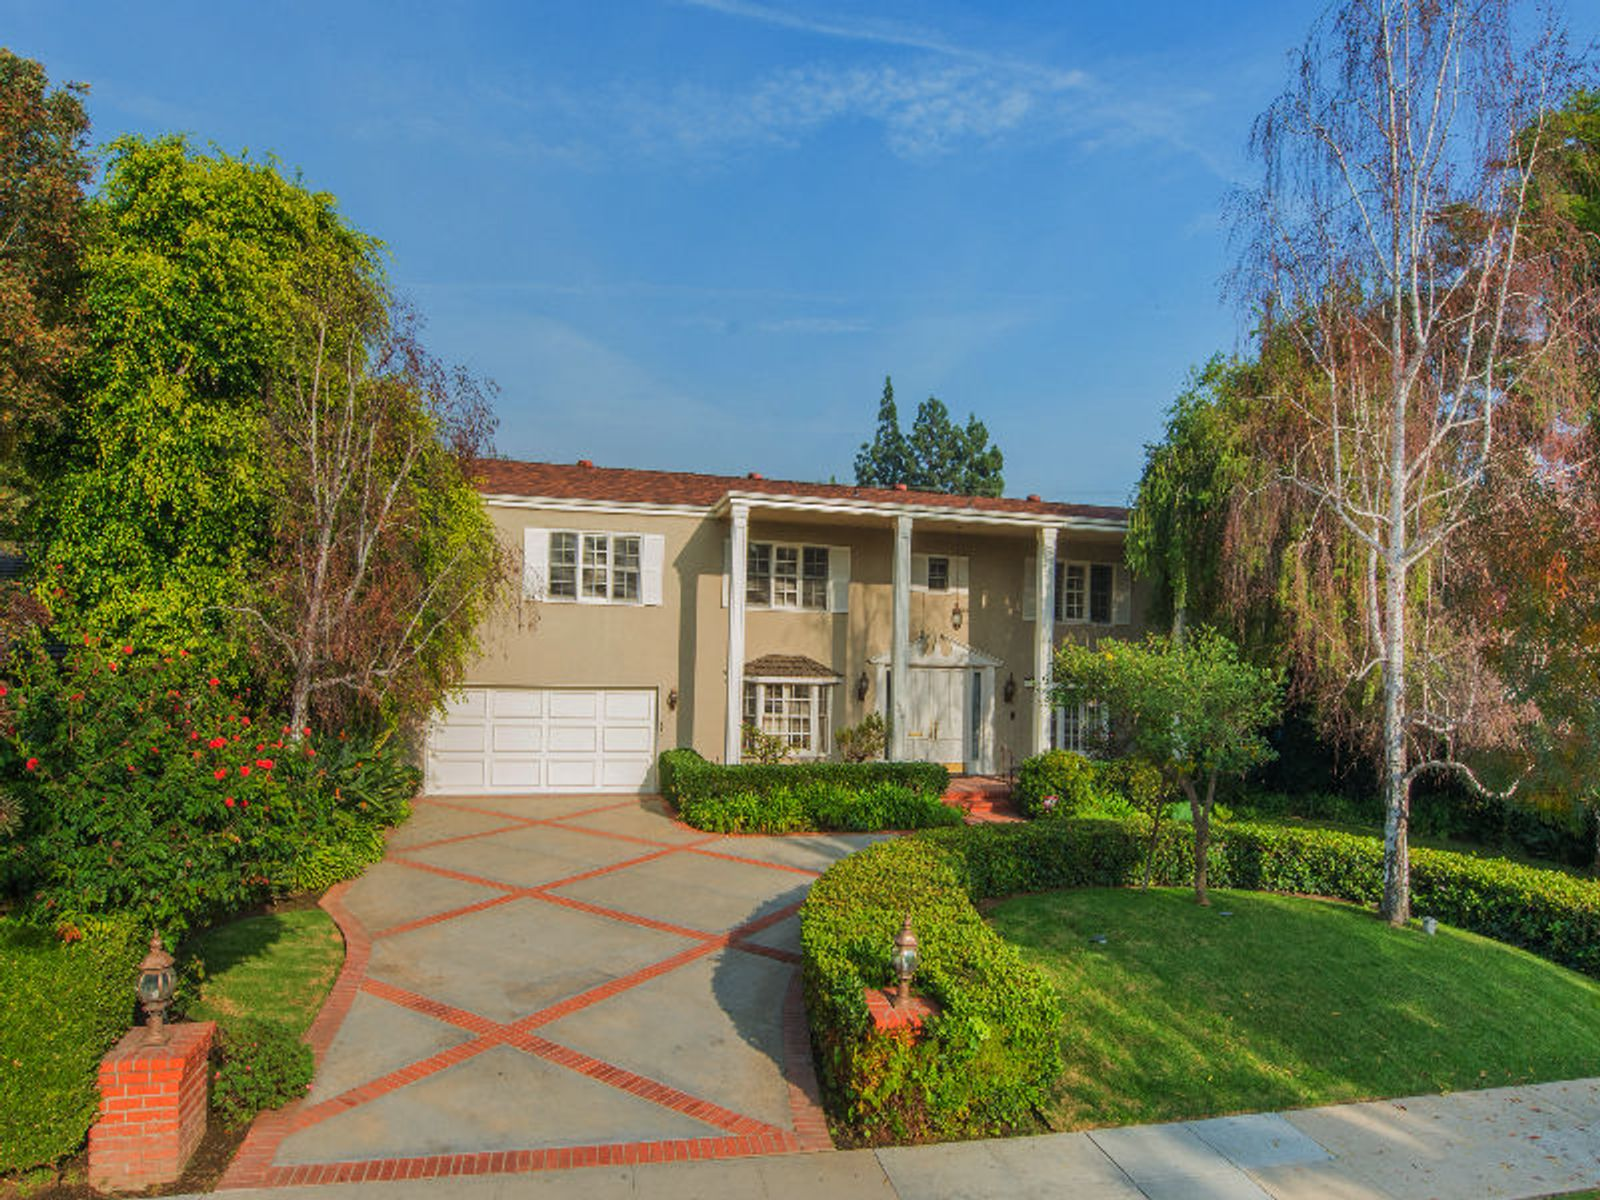 Elegant Beverly Hills Flats Traditional, Beverly Hills CA Single Family Home - Los Angeles Real Estate